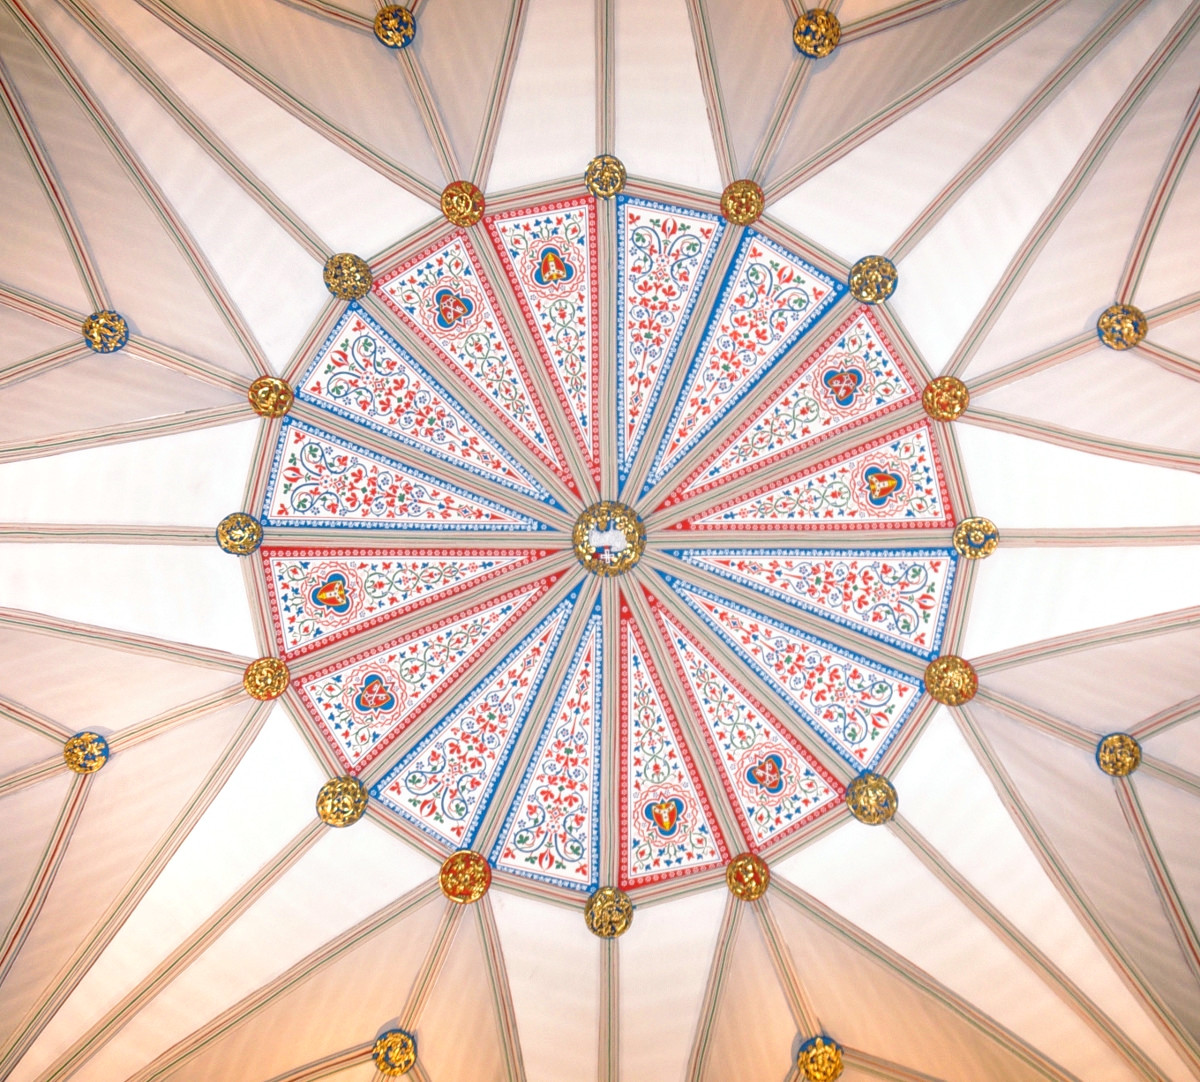 Vault of the Chapter House at York Minster. Credit mattbuck